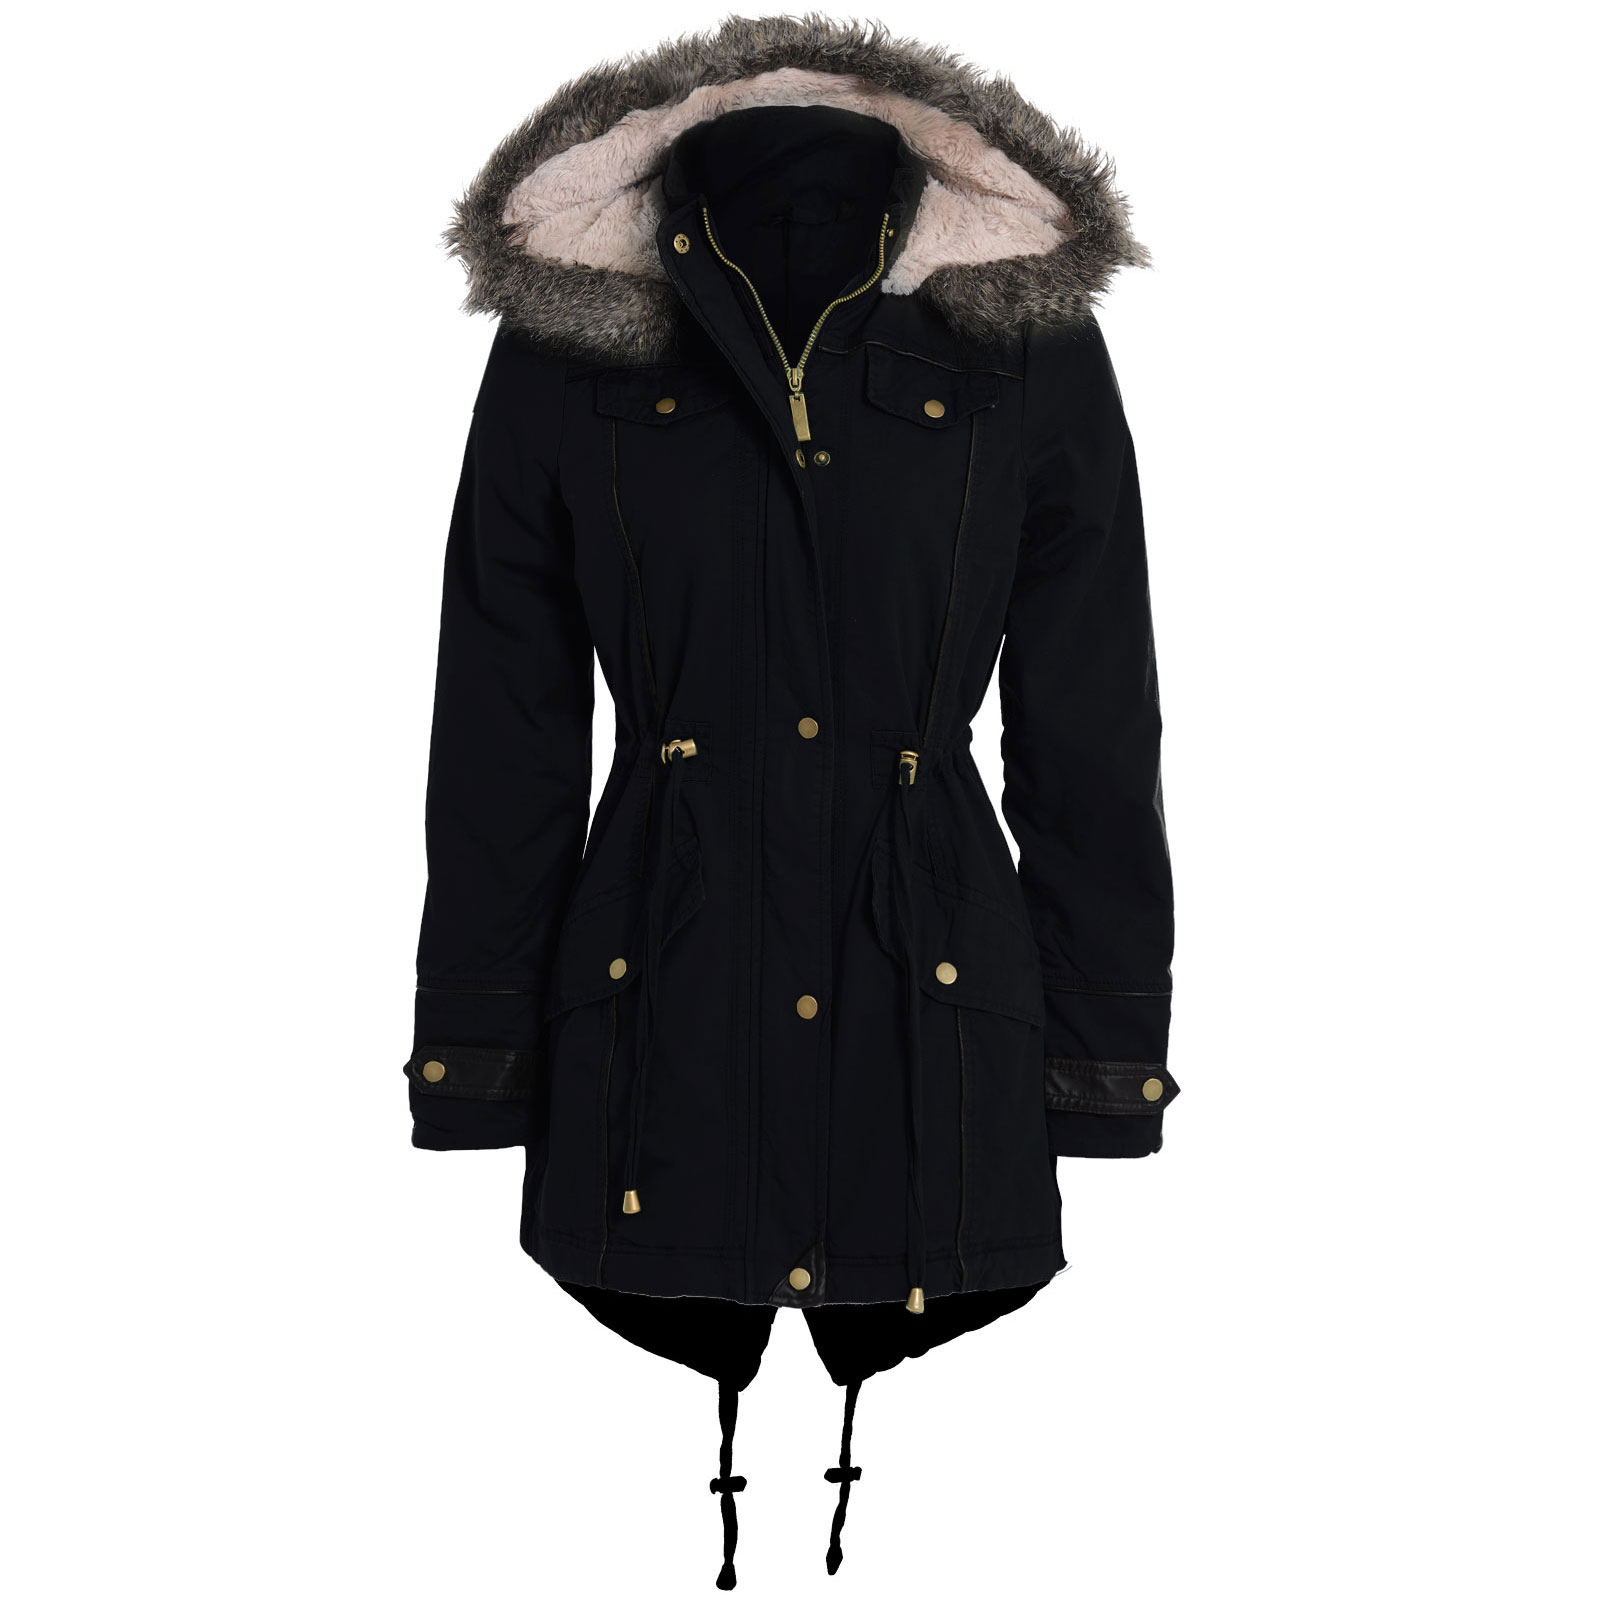 Womens Black Jacket With Fur Hood - Coat Nj